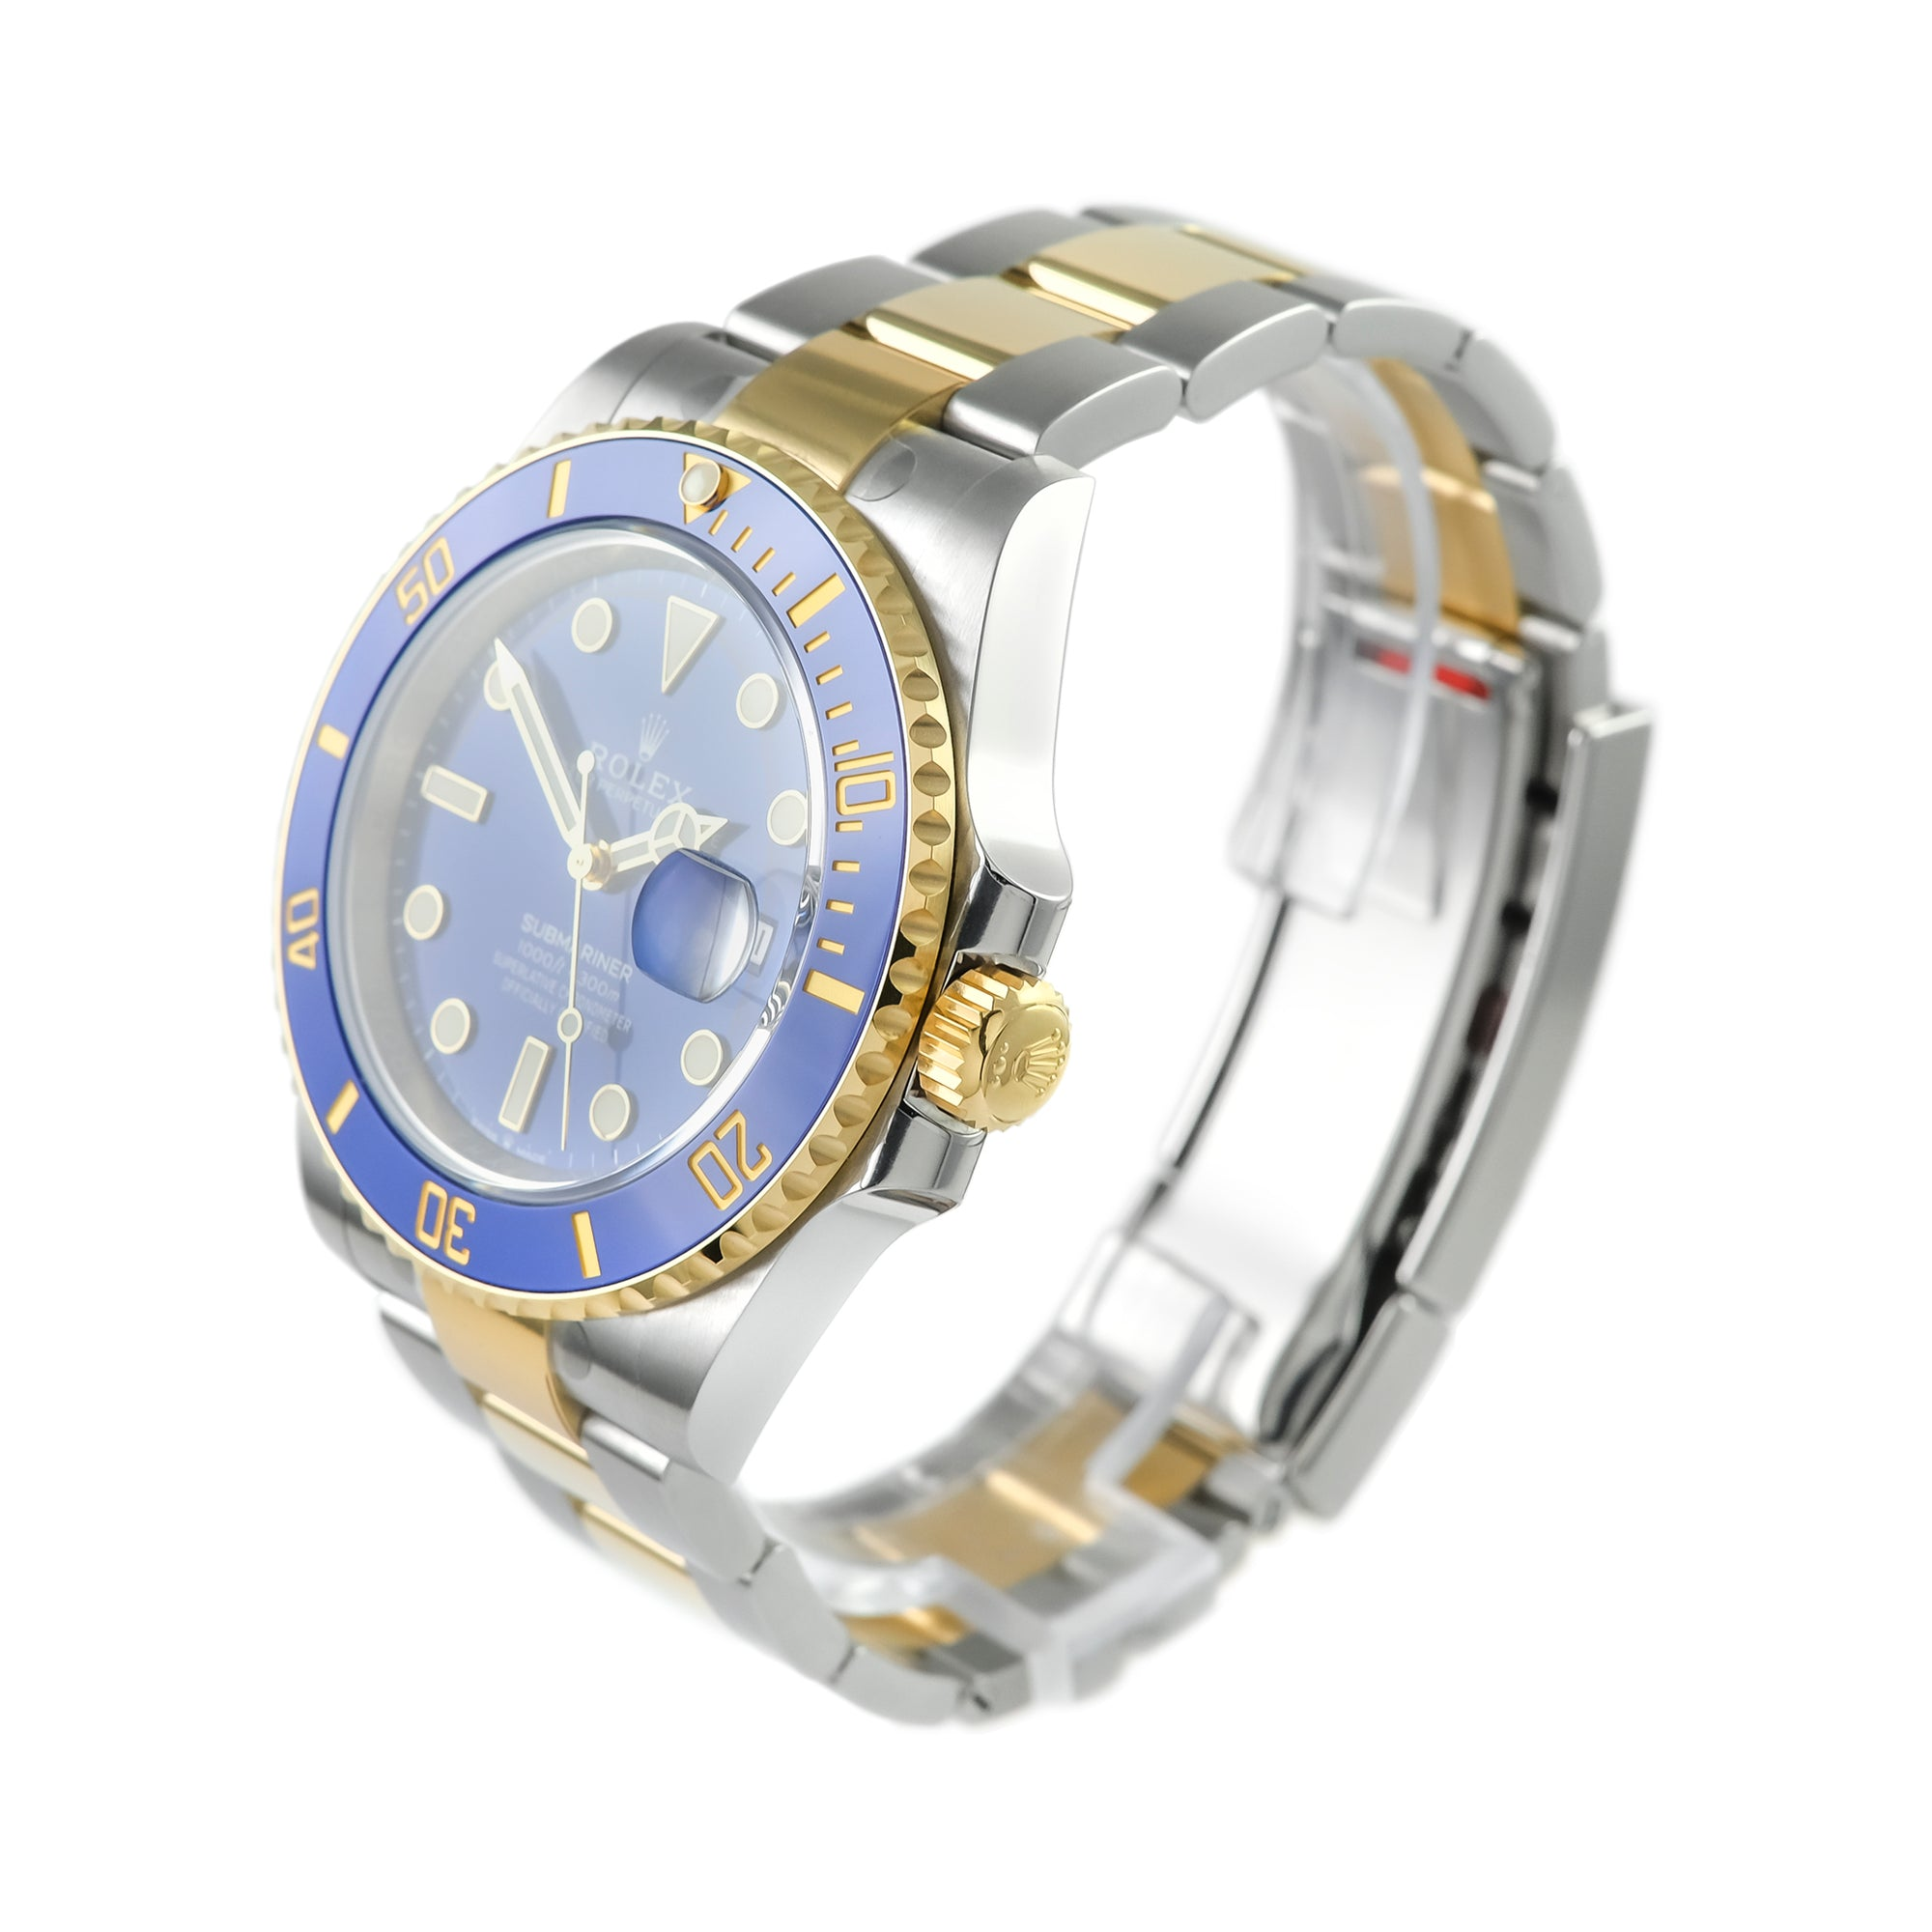 Rolex Submariner 41mm 126613LB